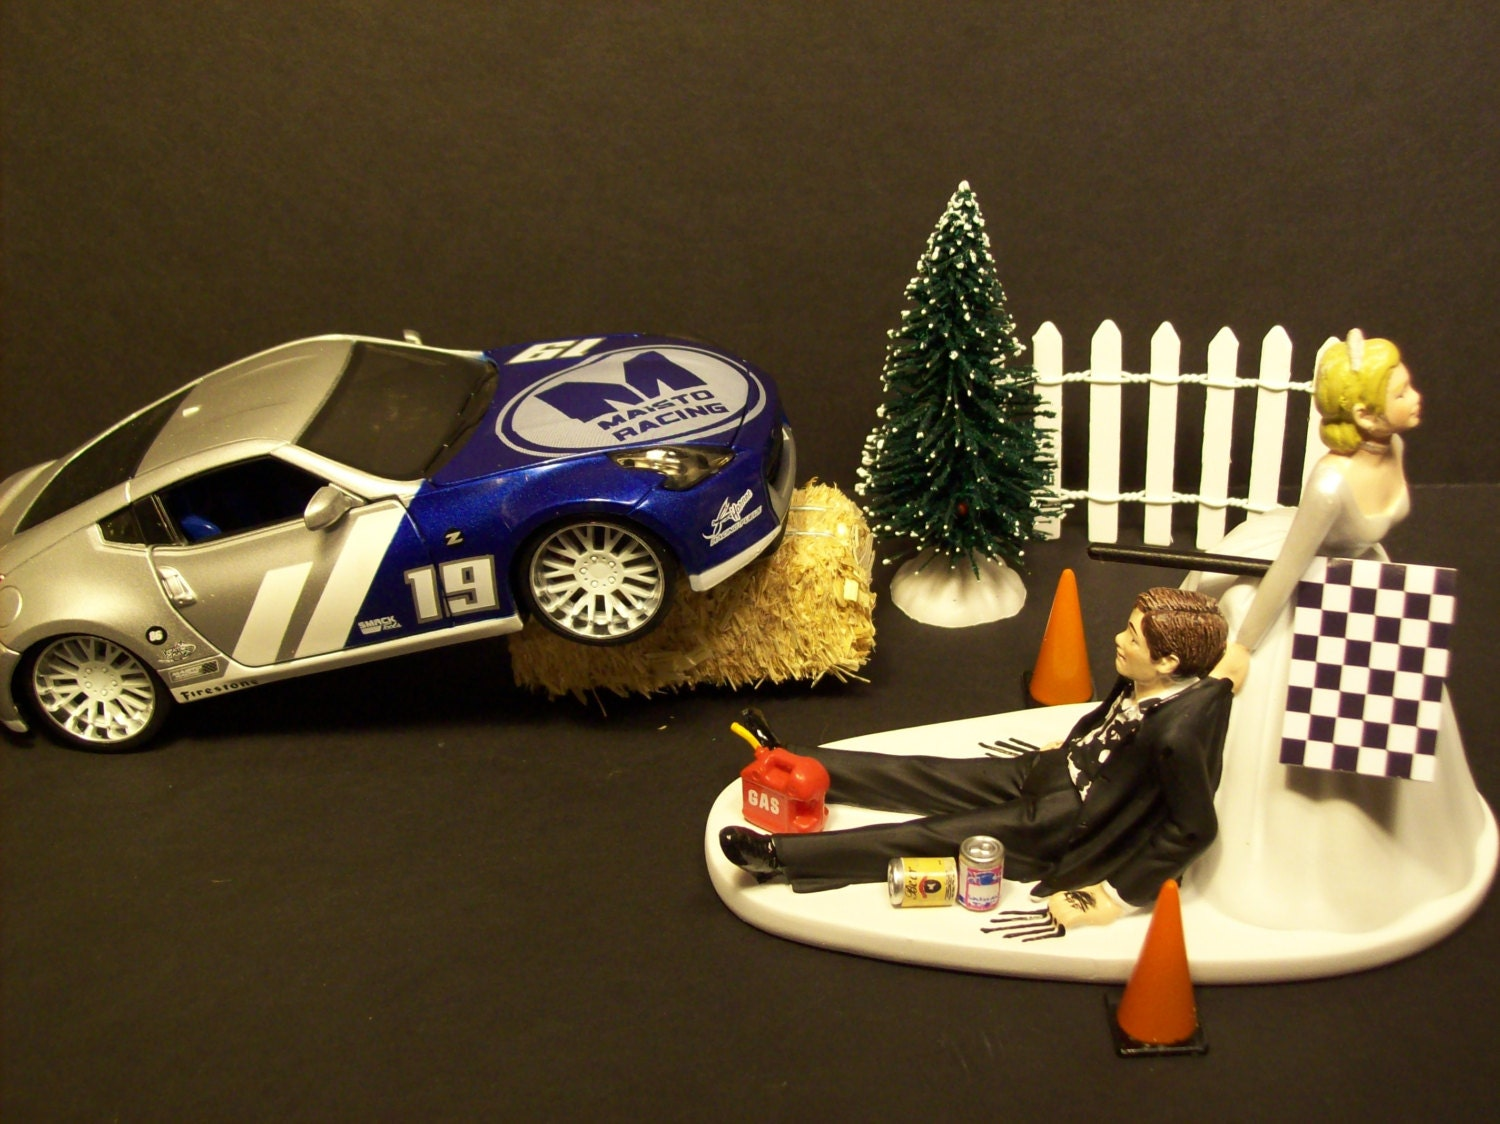 AUTO RALLY RACE Nissan 370 Z Bride and Groom Wedding Cake